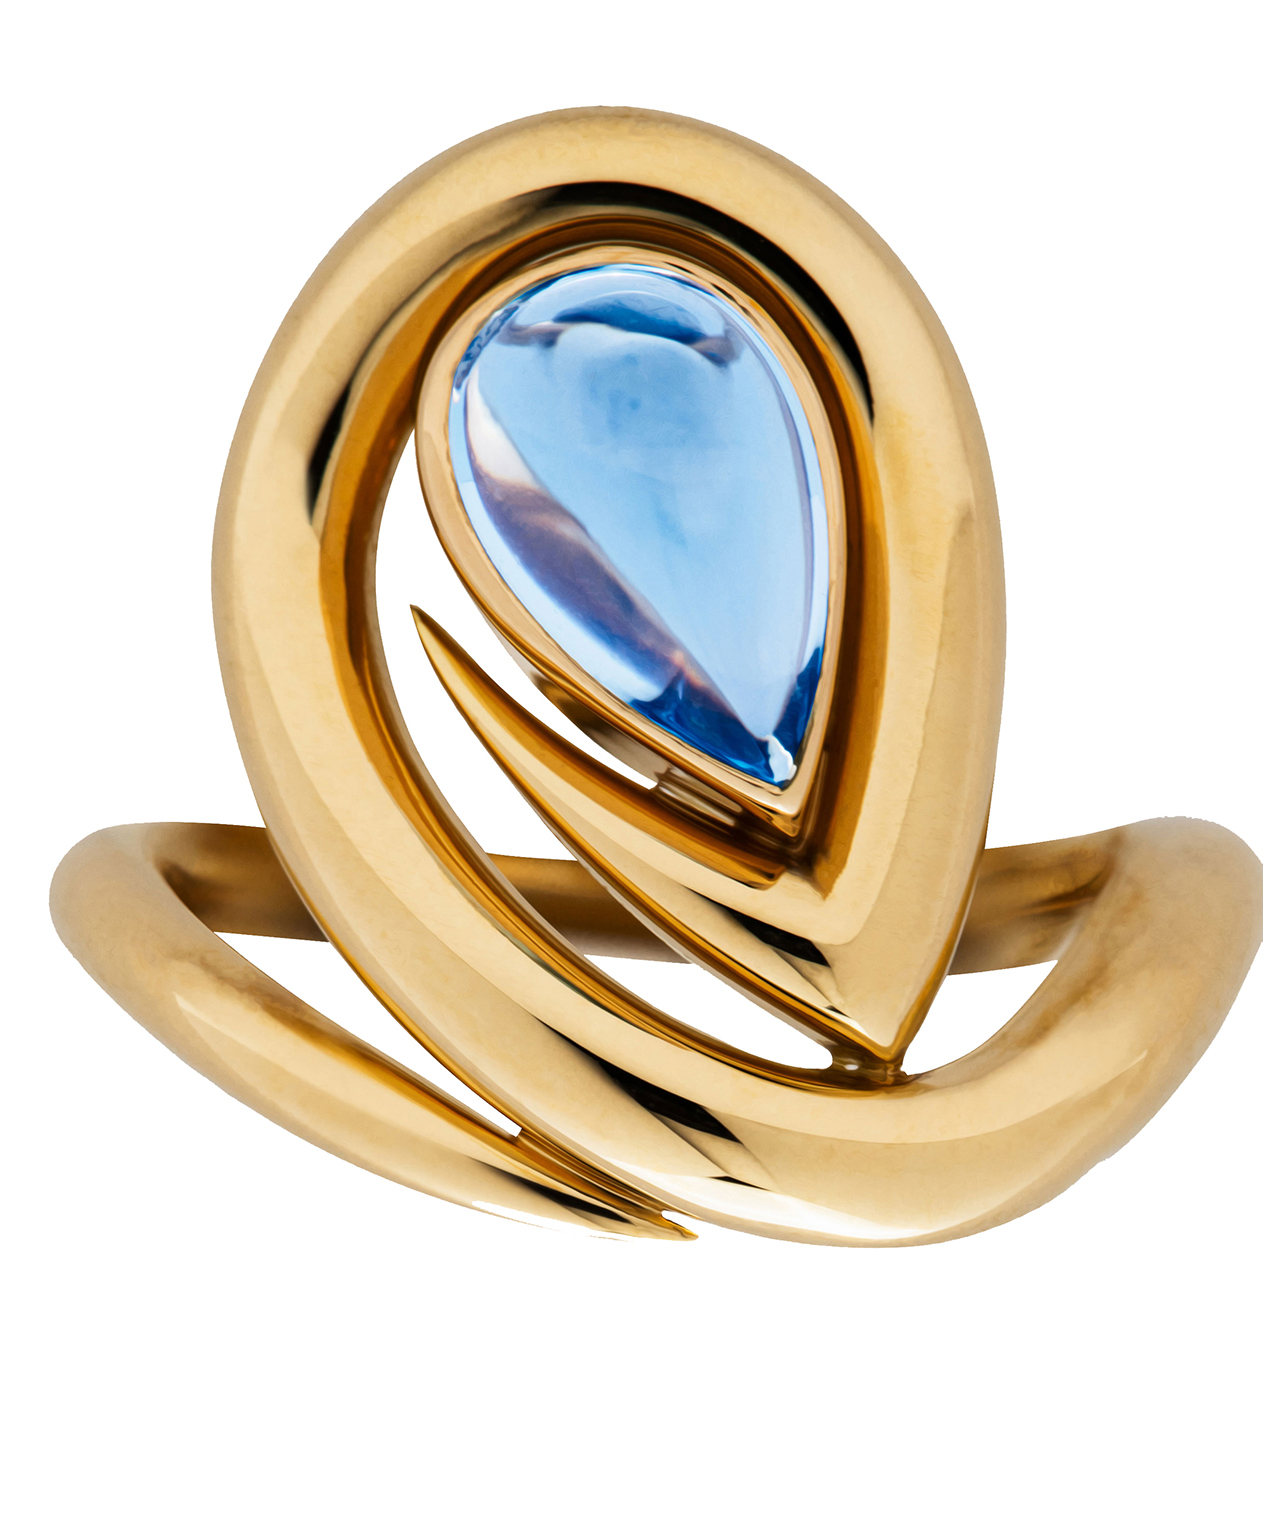 INSTORE Design Awards 2021 – Gold Jewelry Over $5,000